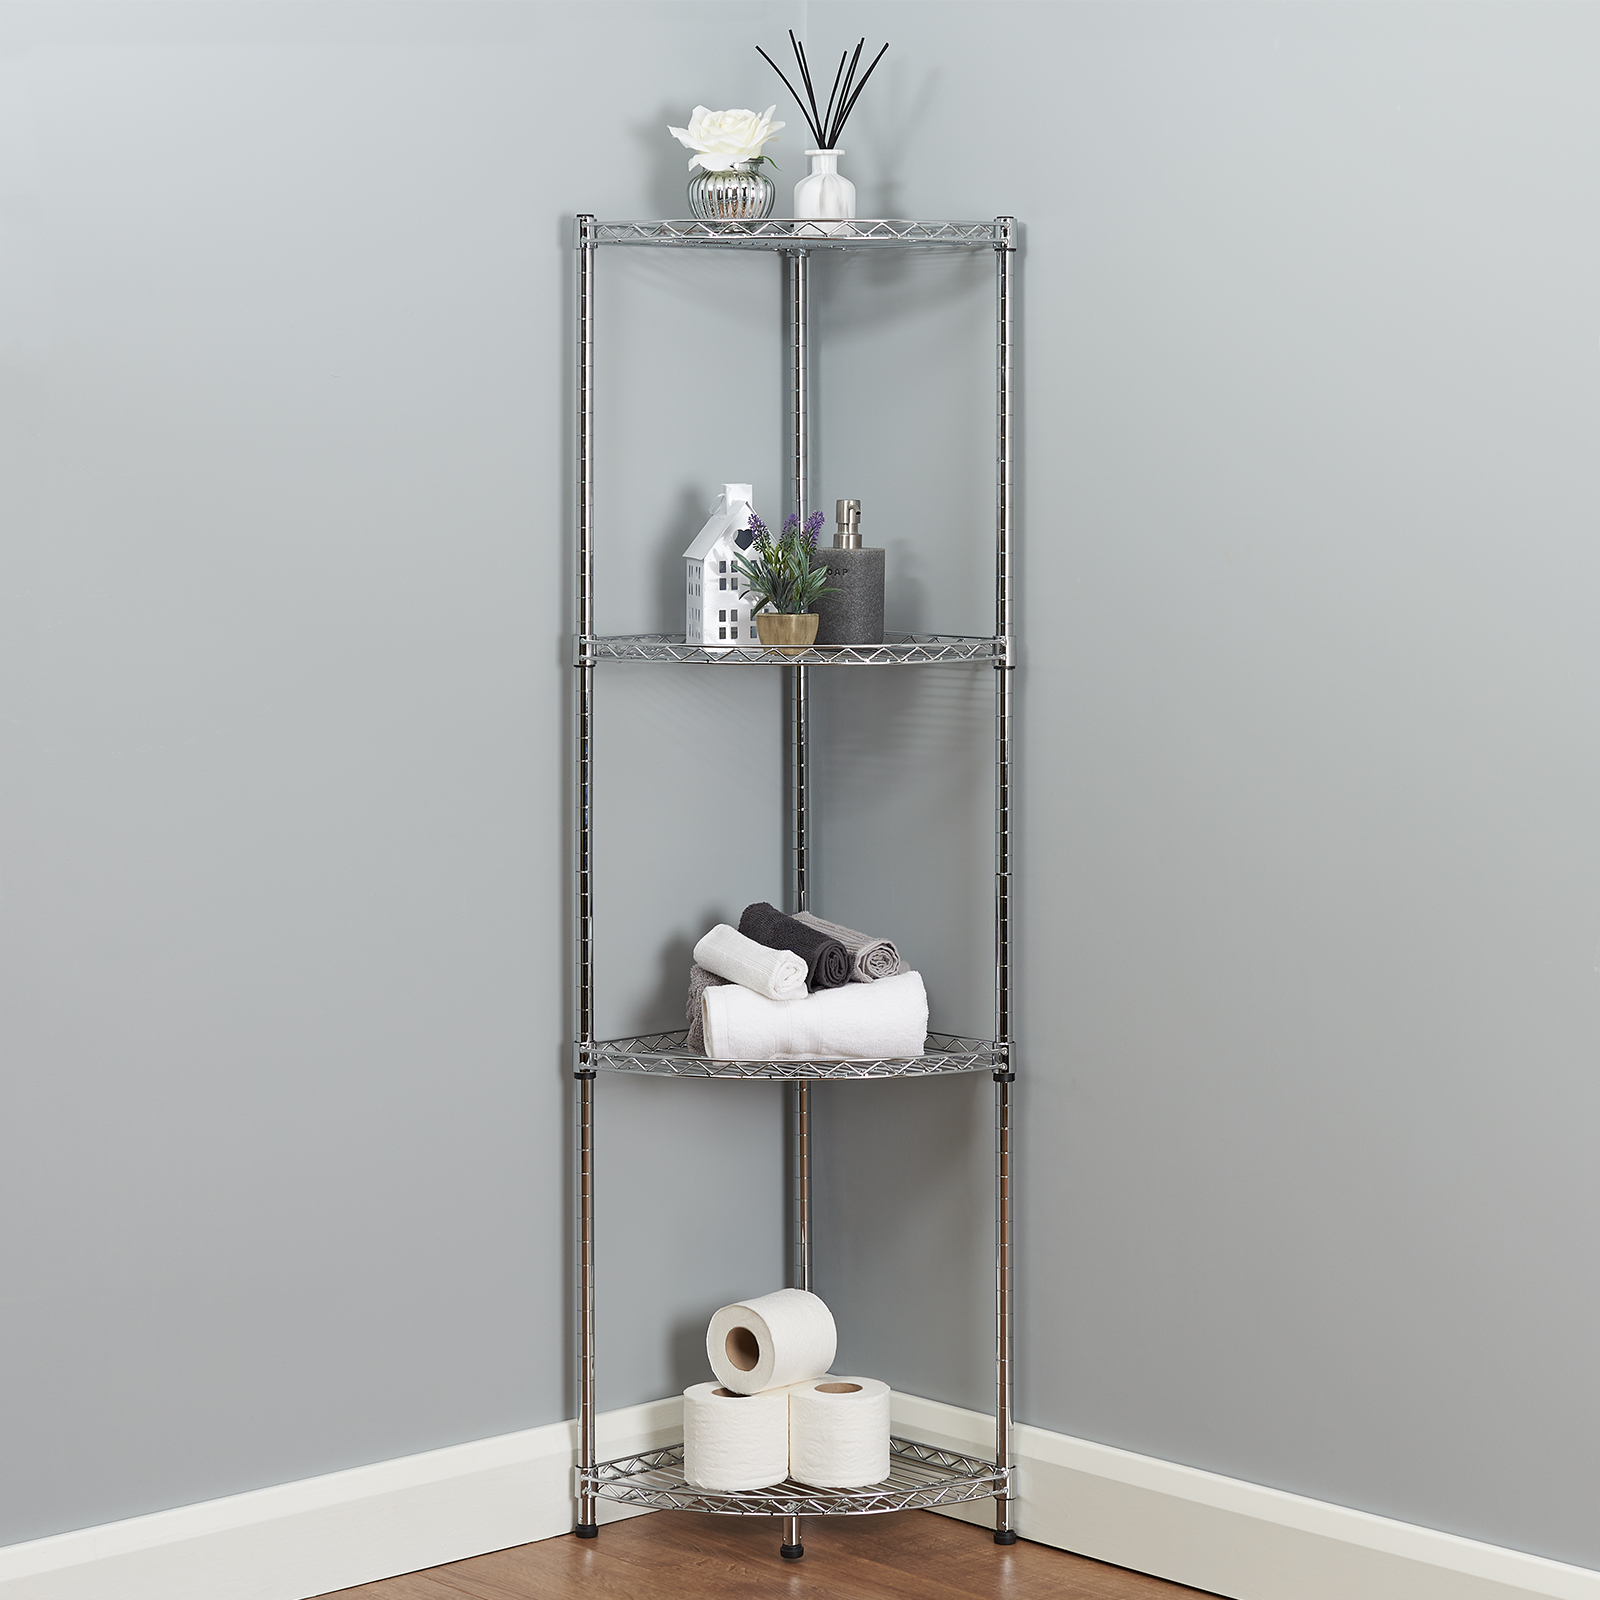 Chrome Bathroom Storage Shelves Image